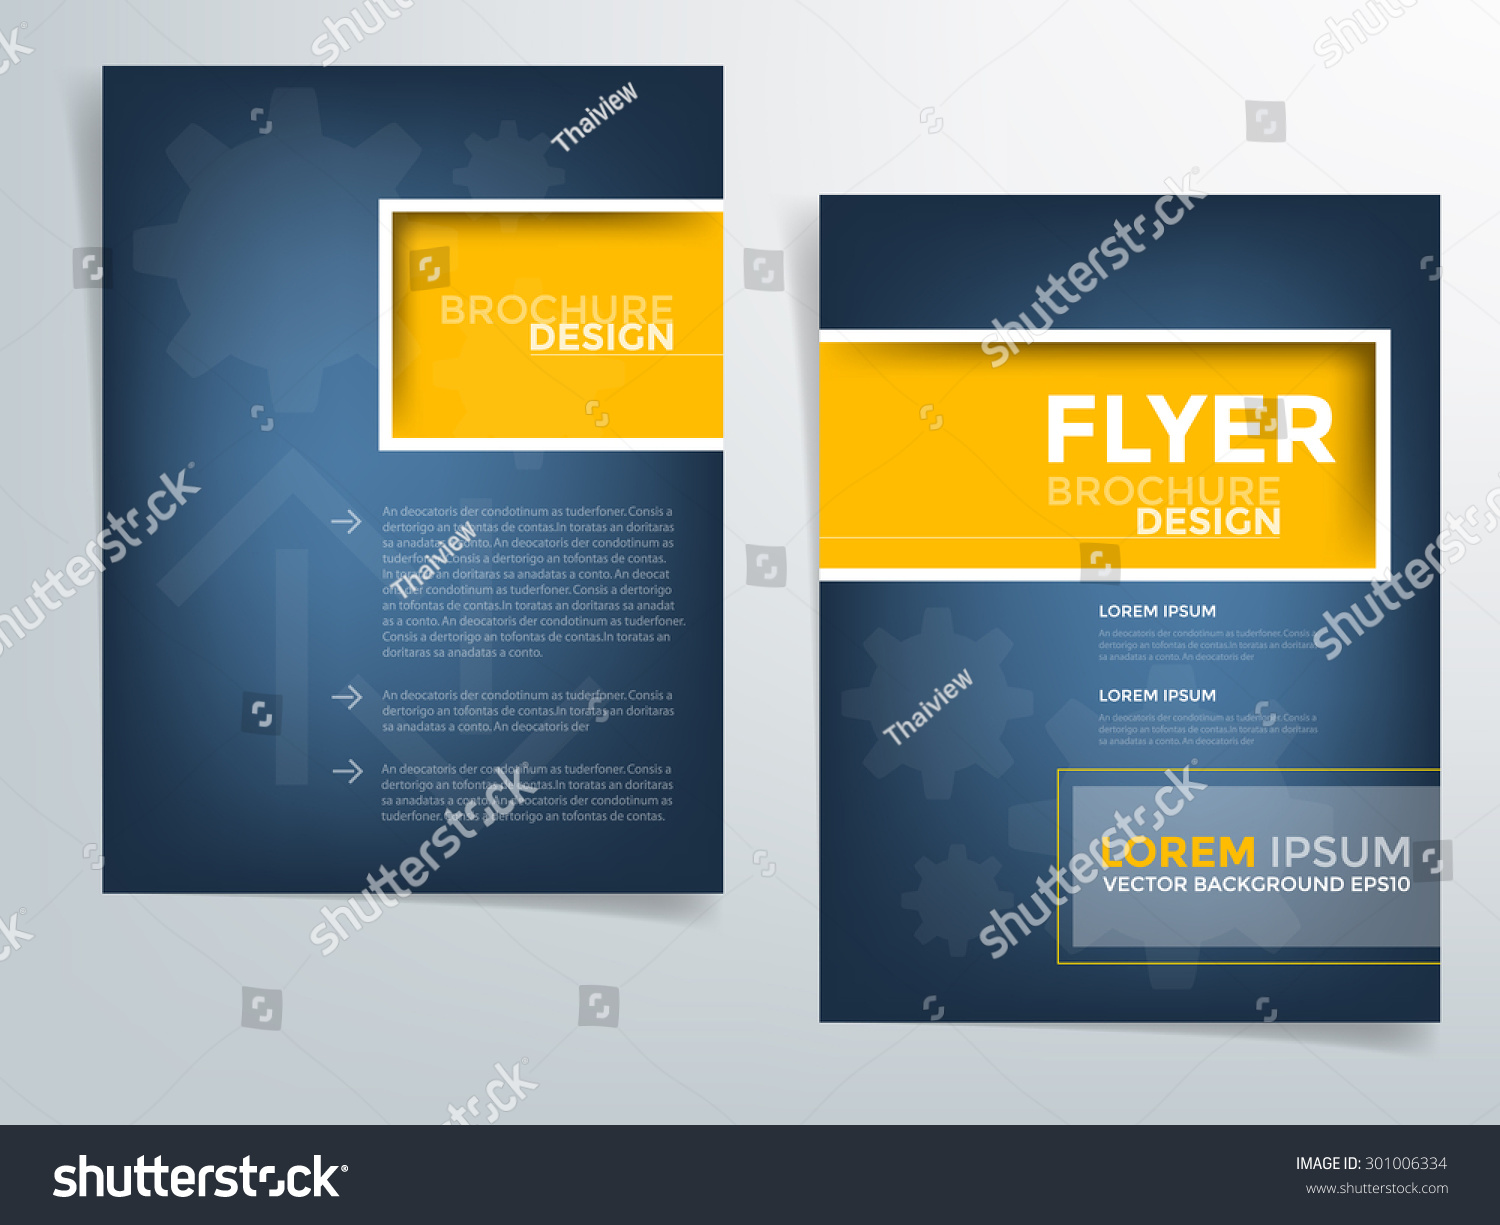 blue brochure template flyer design background stock vector blue brochure template flyer design background and yellow square box element and space for add picture